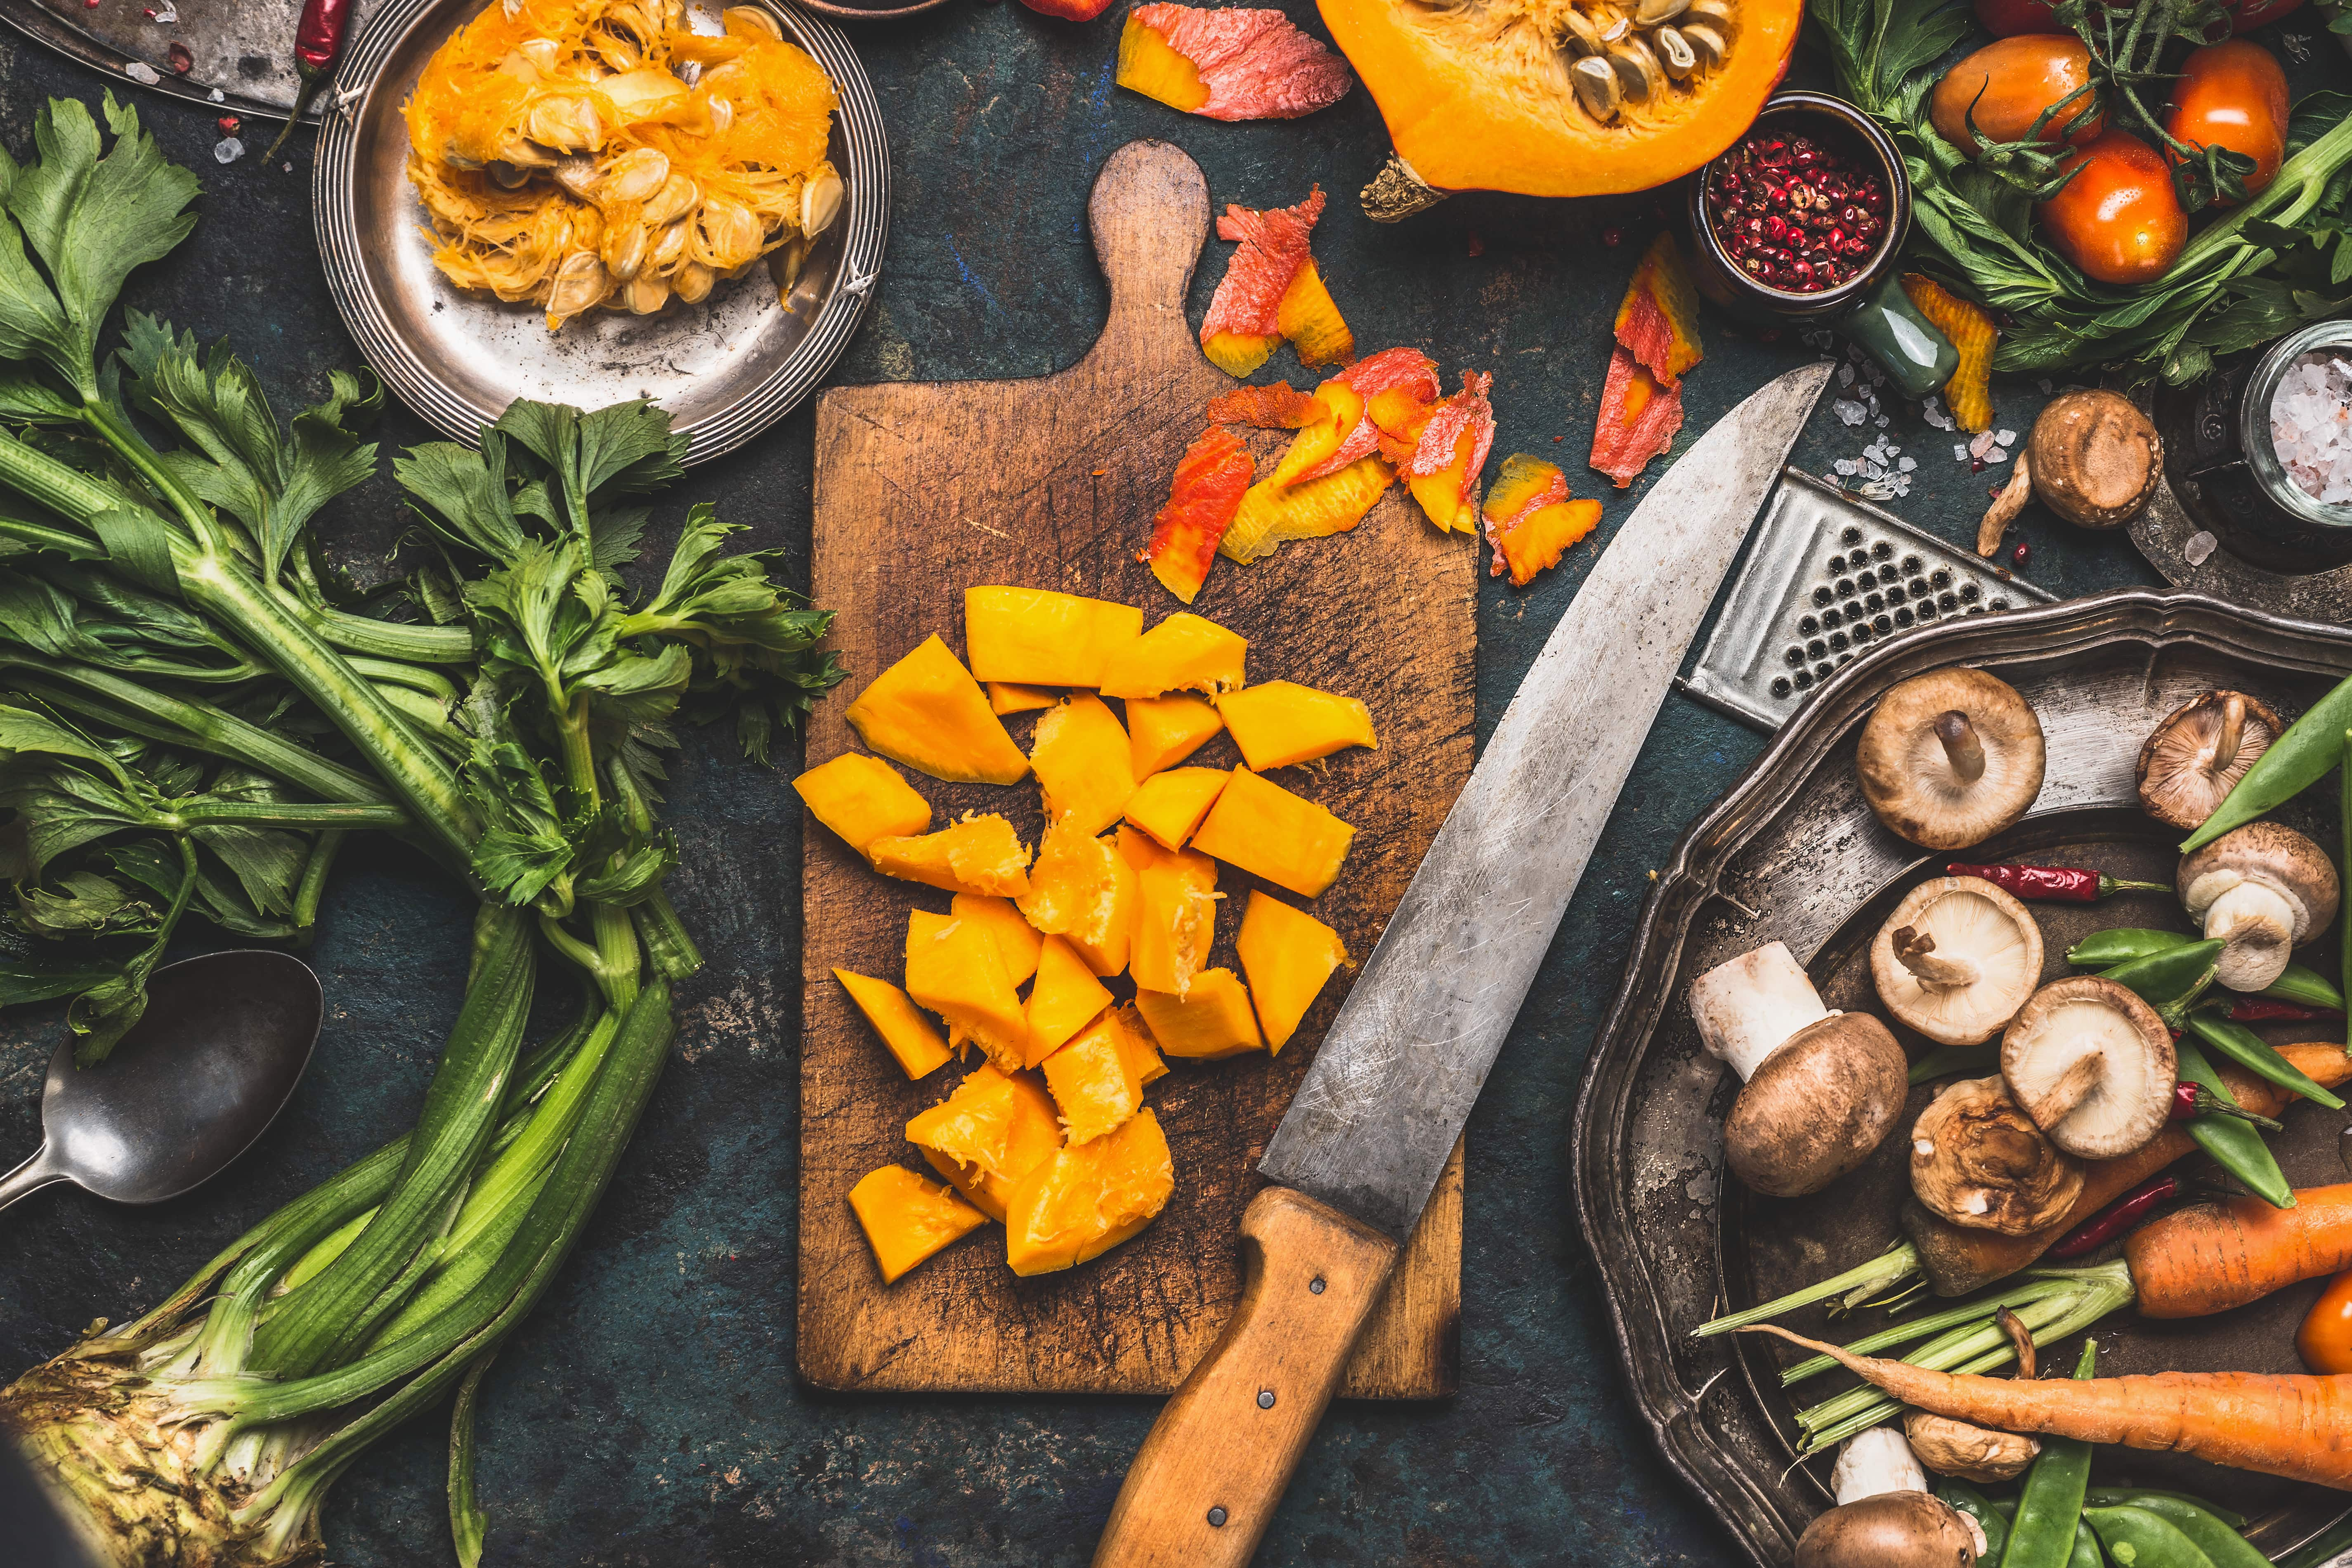 Happy and Healthy Living: How I Eat Healthier This Fall Season